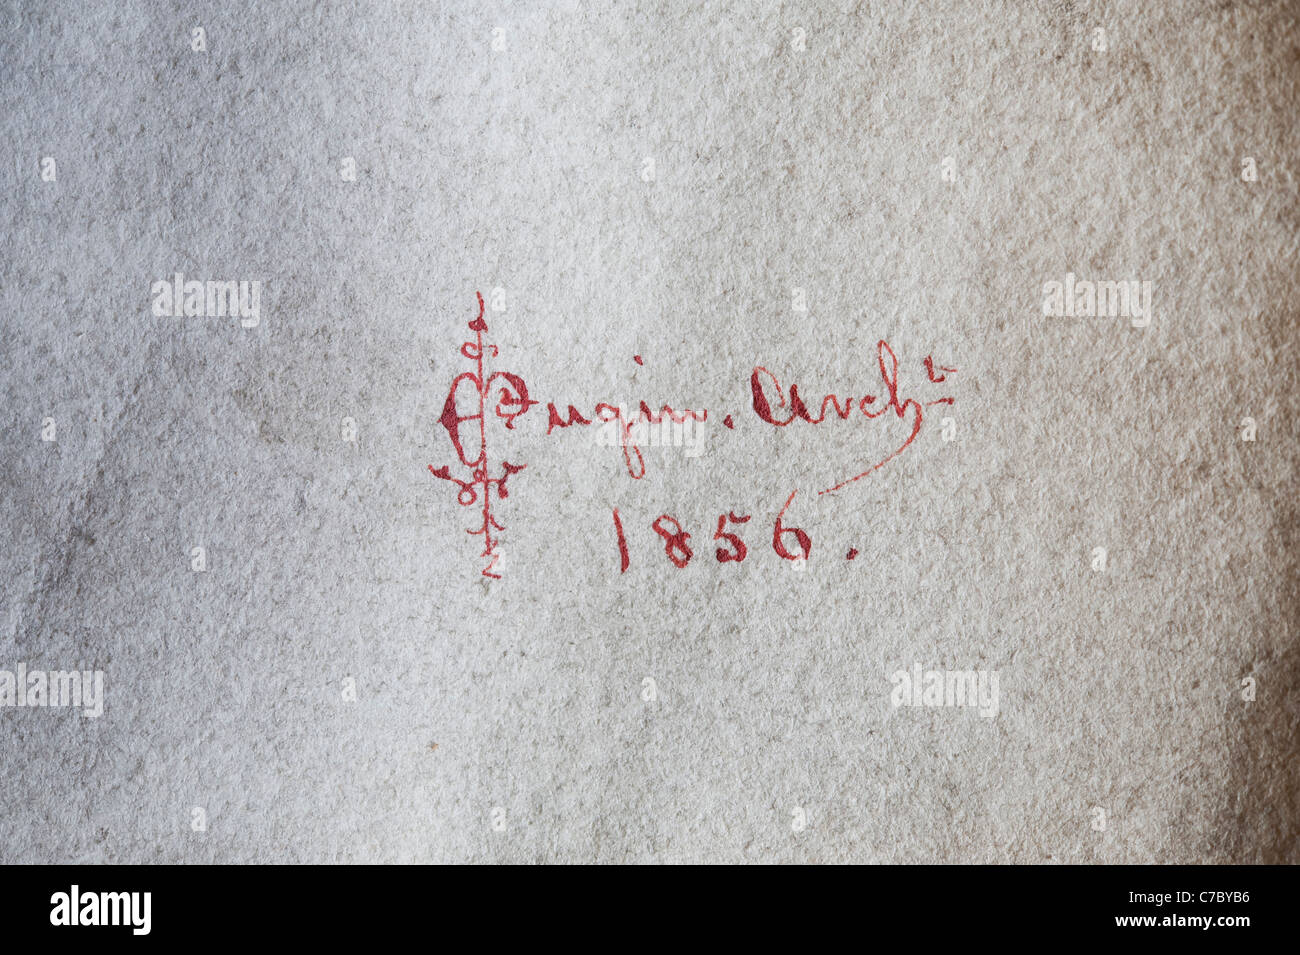 The elaborate signature of the architect E.W. Pugin (son of Augustus Pugin) on one of his architectural drawings - Stock Image